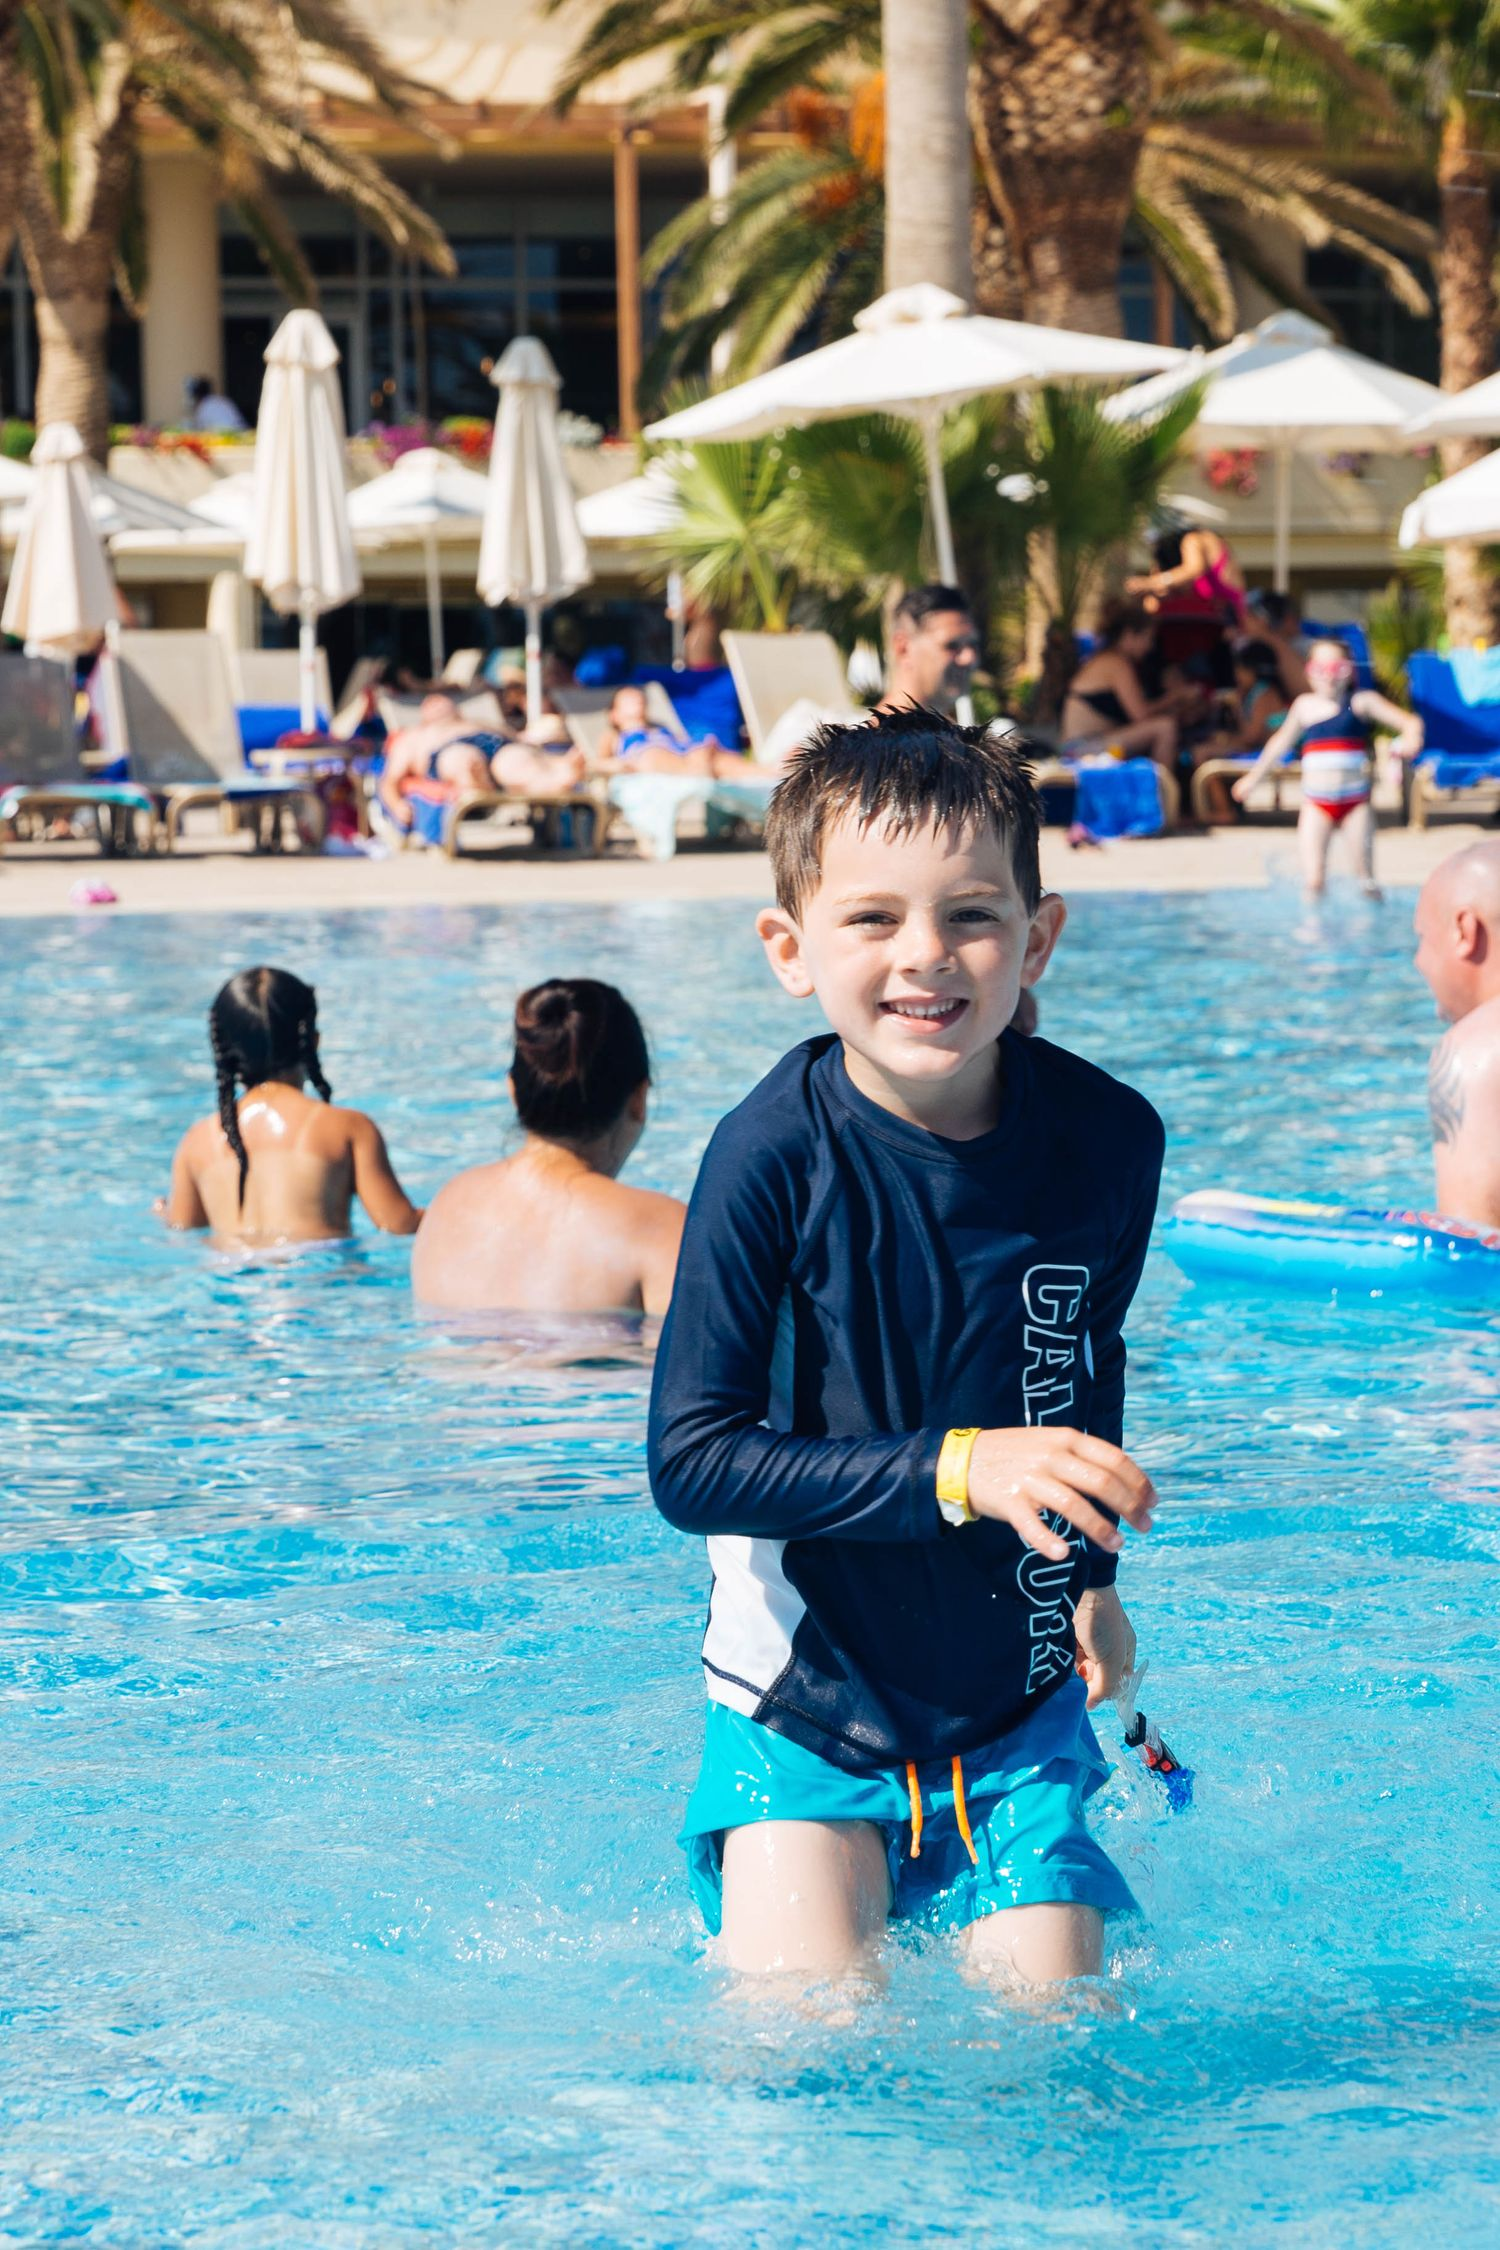 boy in swimming t-shirt in a pool smiling